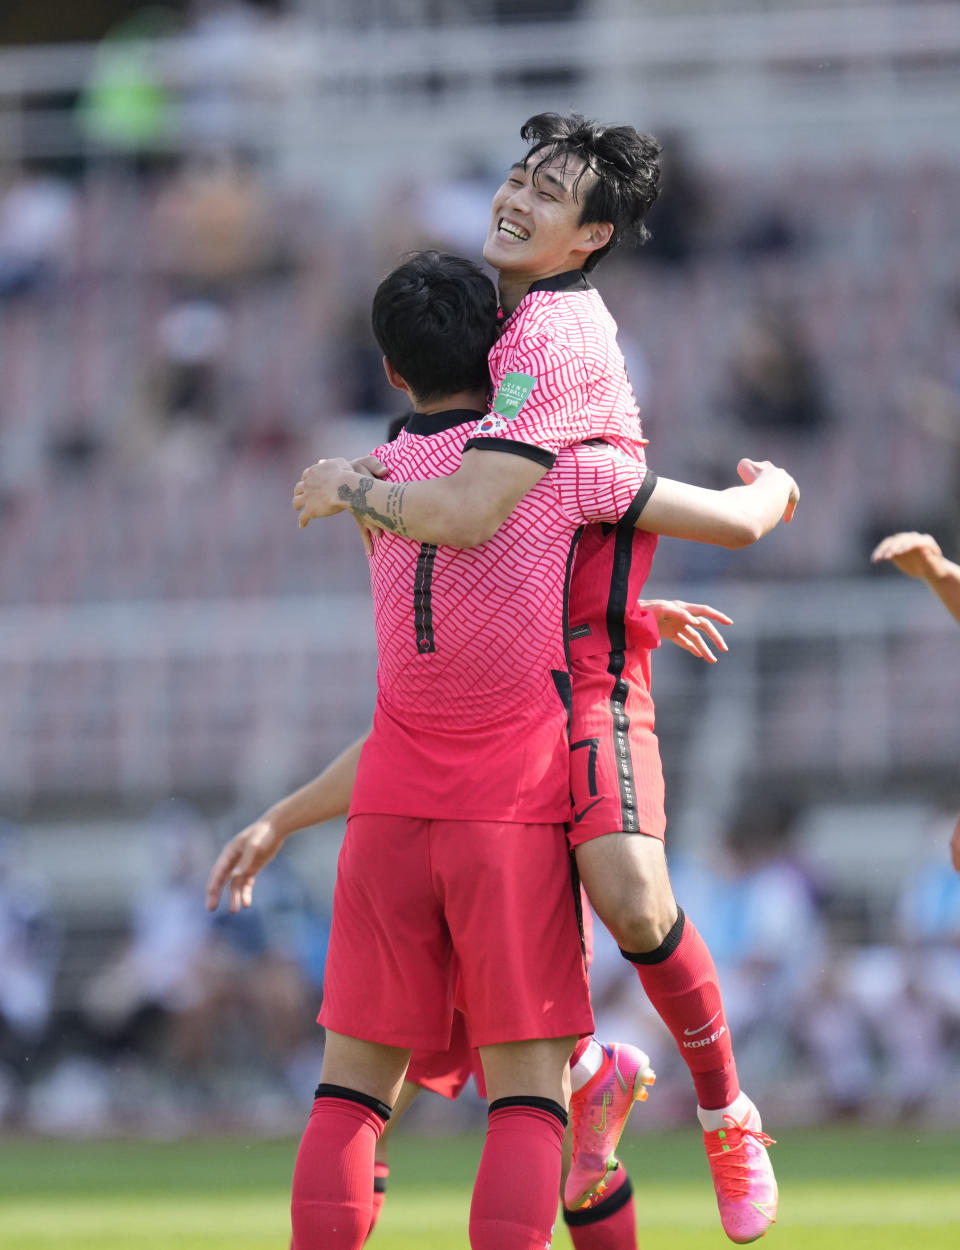 South Korea's Song Min-kyu celebrates with Son Heung-min (7) after scoring his side's first goal against Lebanon during their Asian zone Group H qualifying soccer match for the FIFA World Cup Qatar 2022 at Goyang stadium in Goyang, South Korea, Sunday, June 13, 2021. (AP Photo/Lee Jin-man)